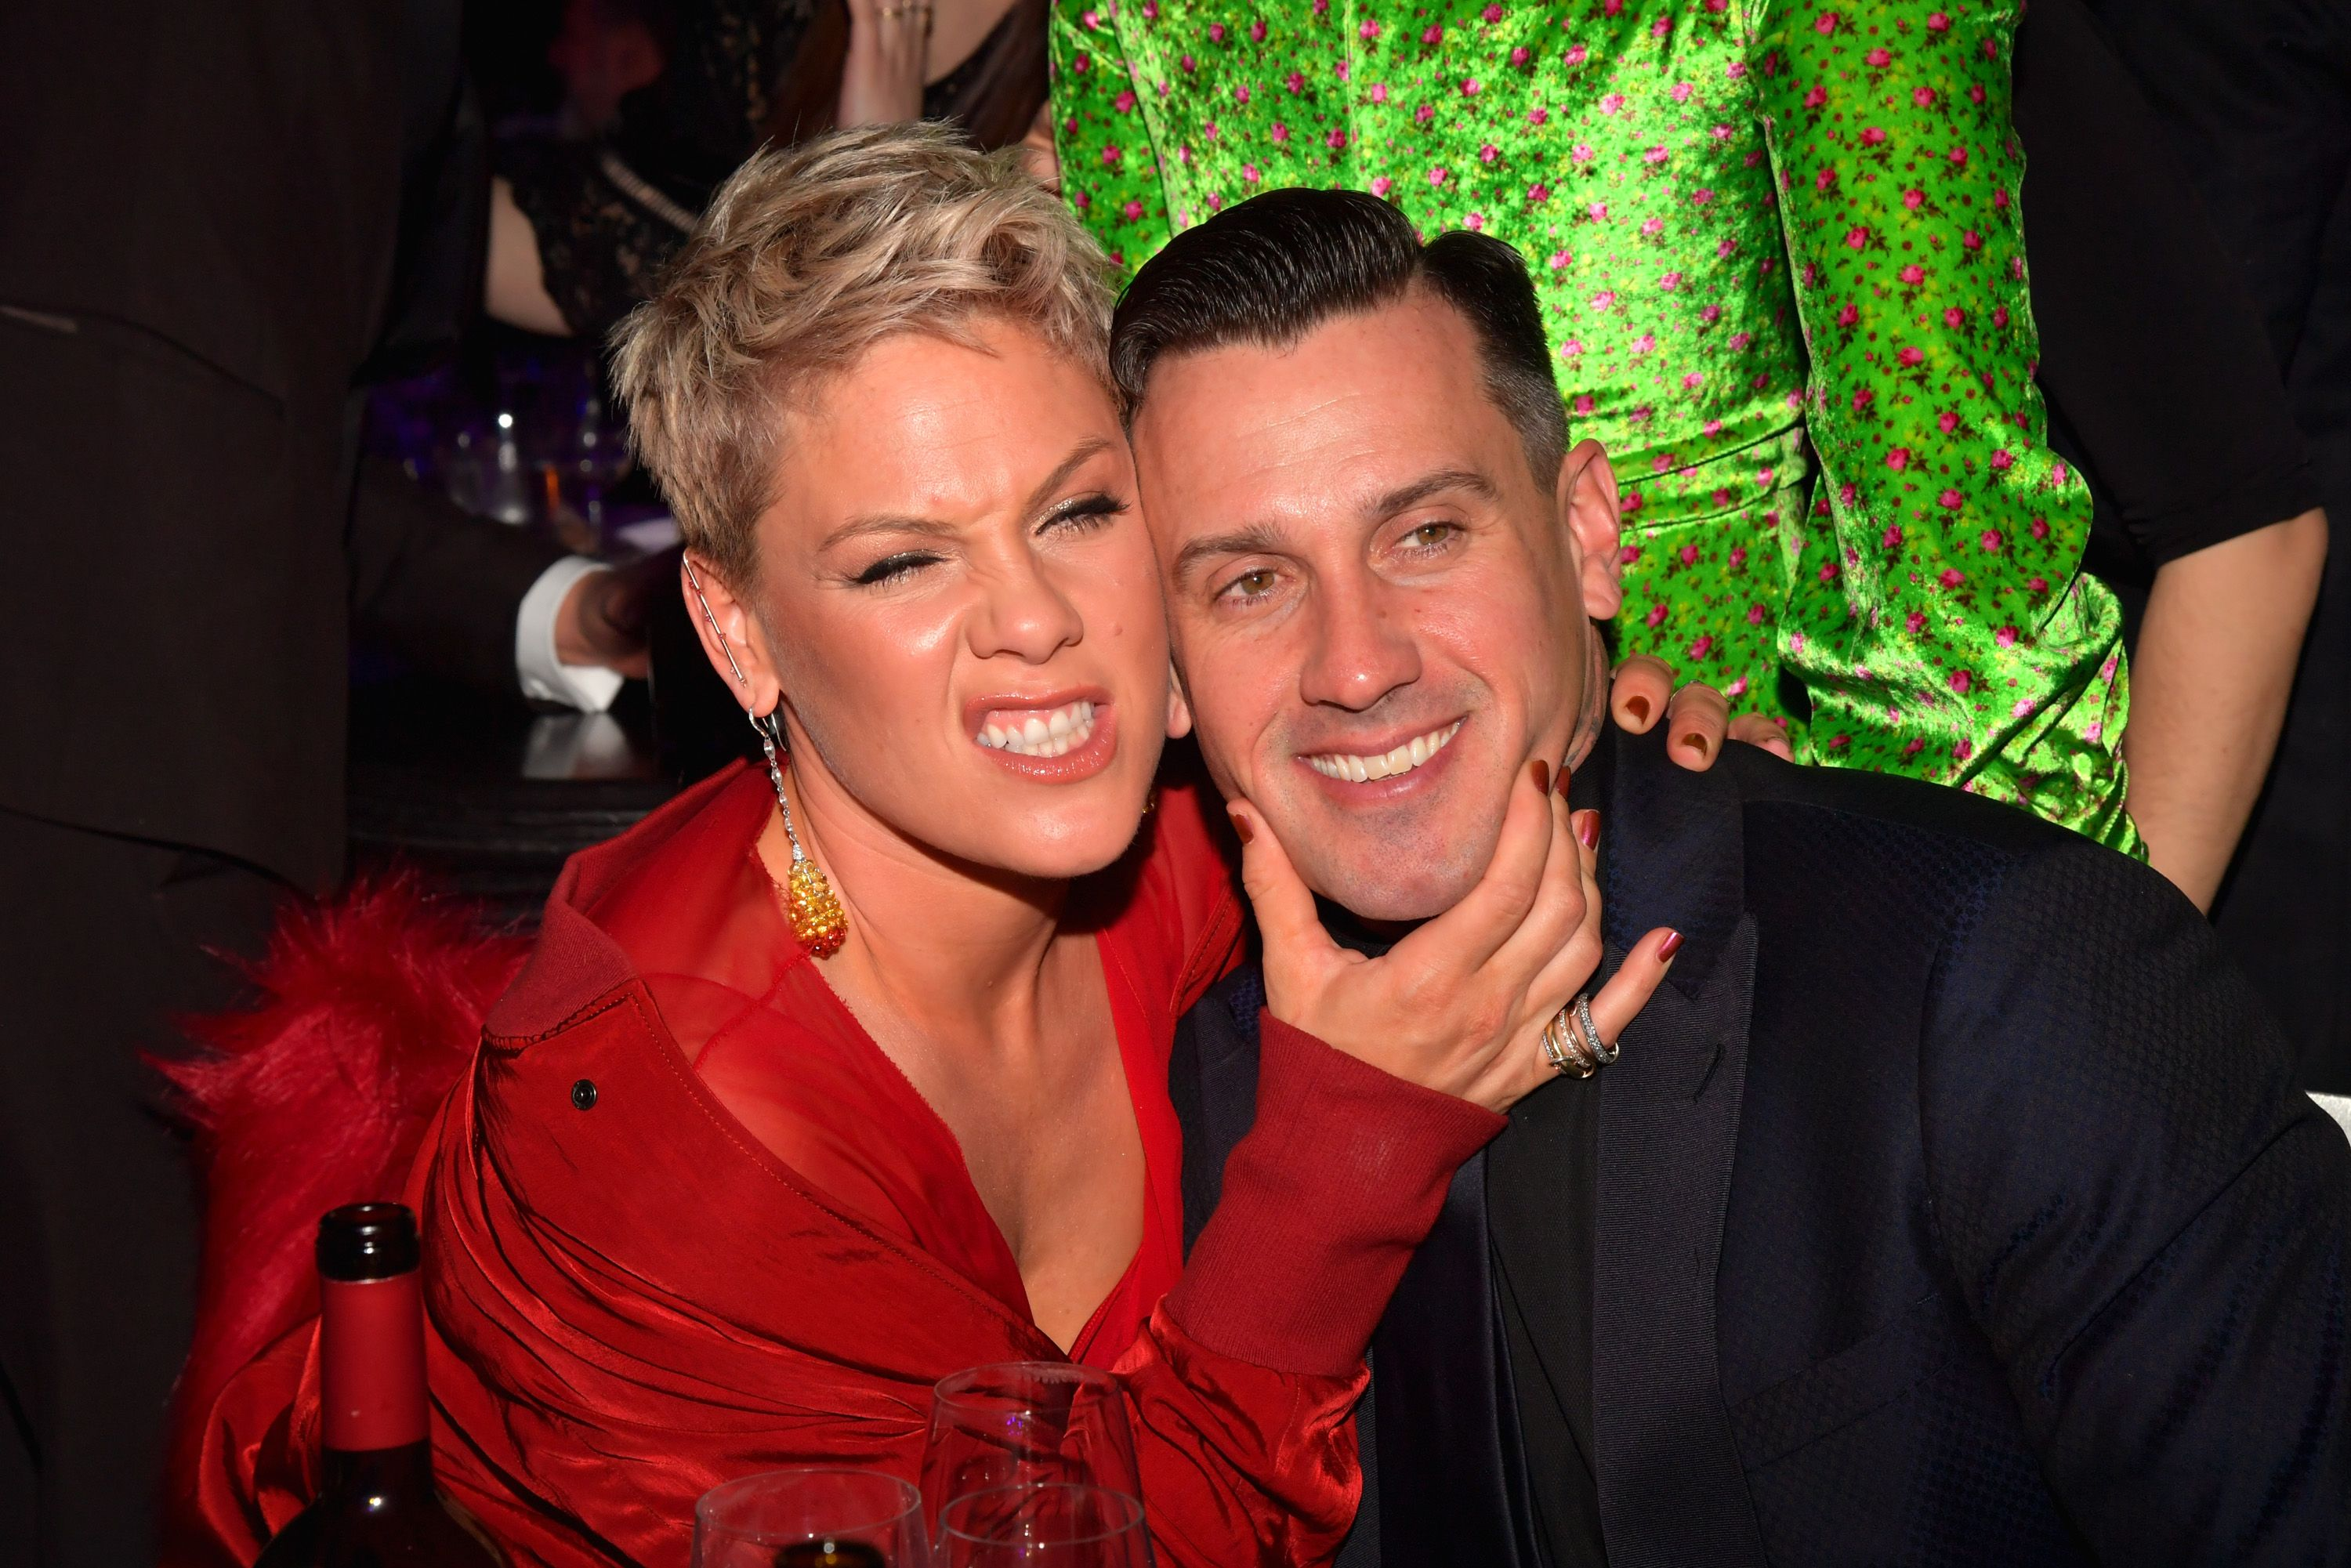 Pink and Carey Hart at the Clive Davis and Recording Academy Pre-GRAMMY Gala and GRAMMY Salute to Industry Icons Honoring Jay-Z on January 27, 2018 | Photo: Getty Images